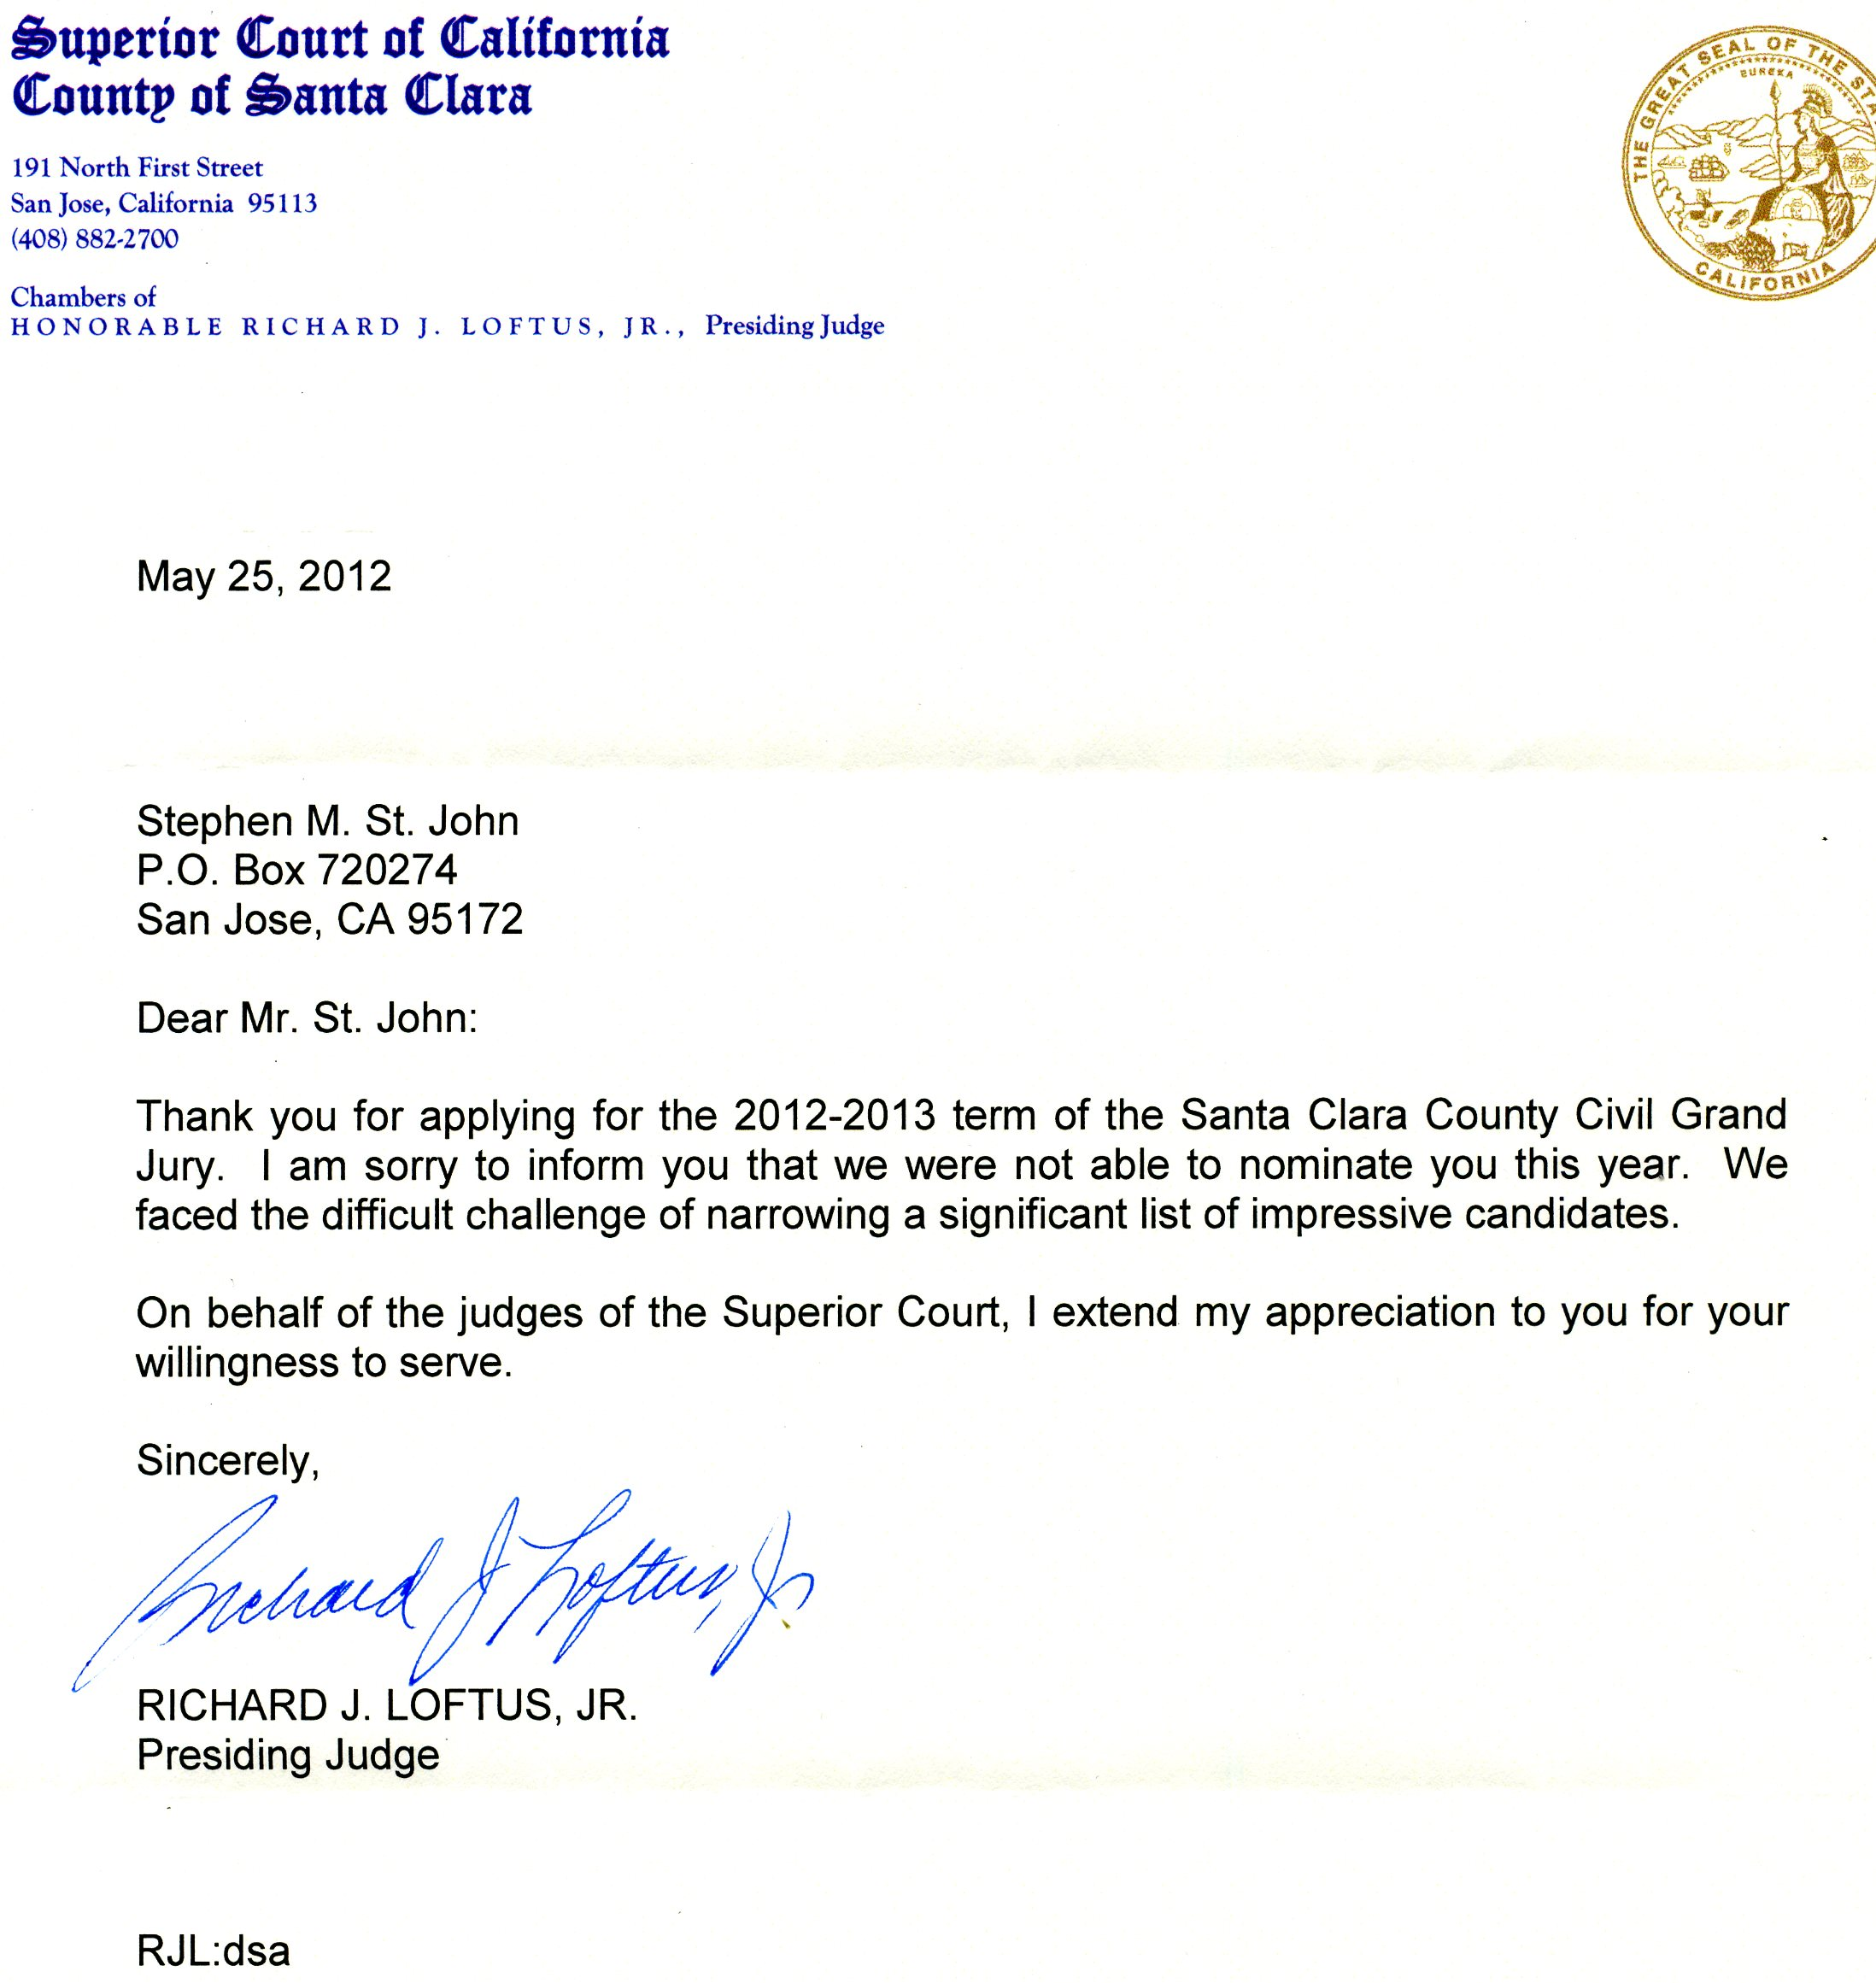 Letter from Judge Loftus